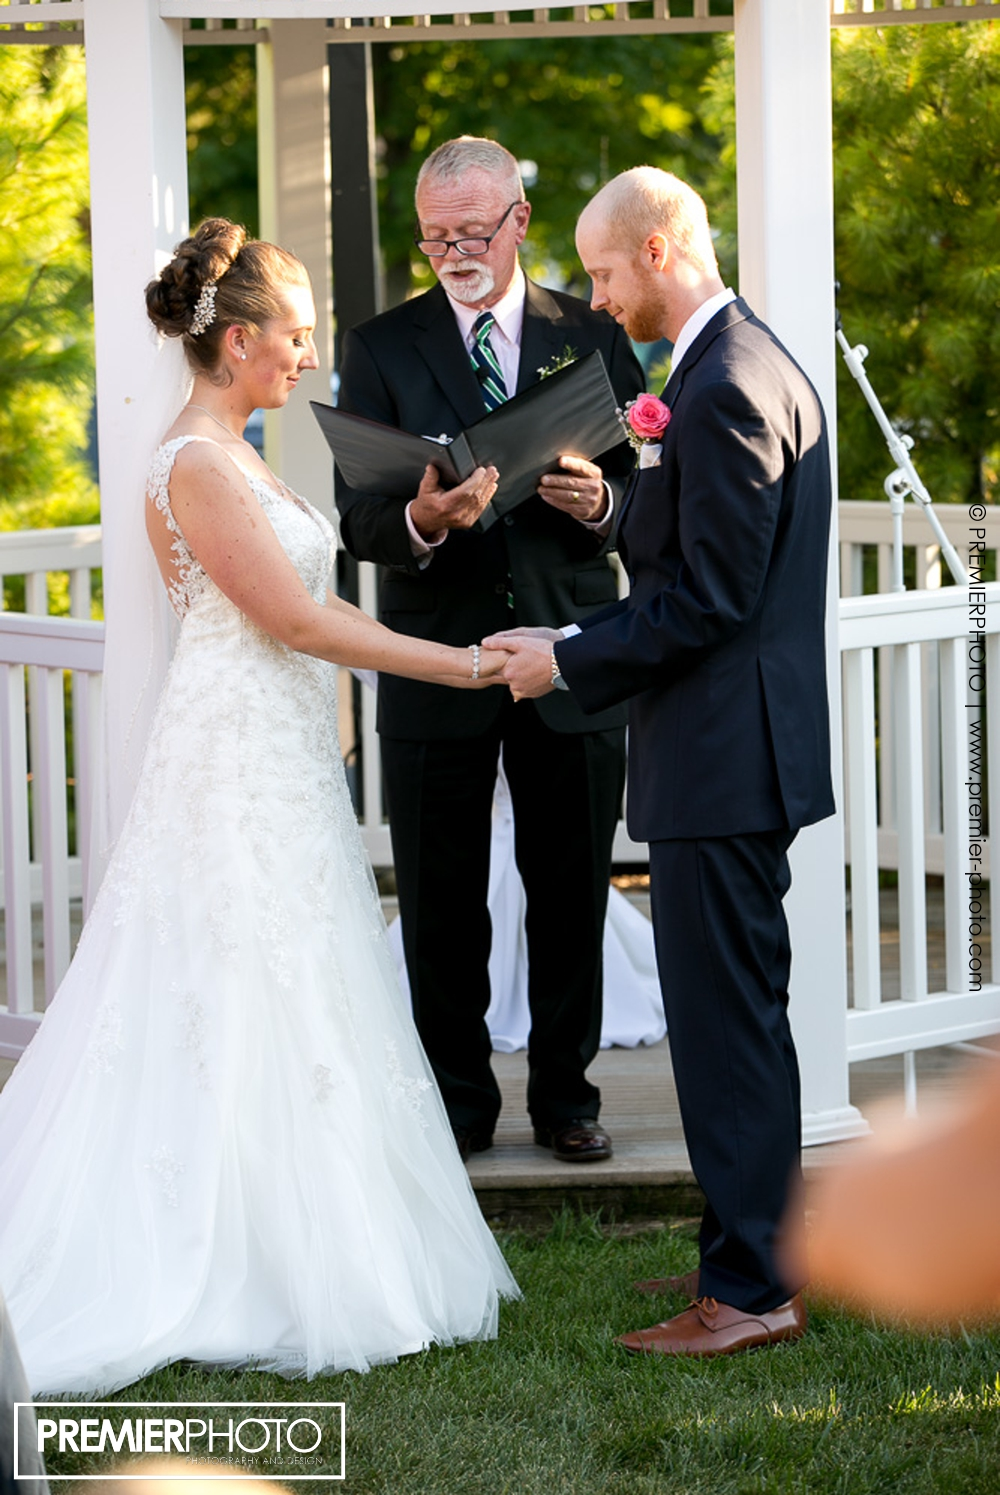 Officiant declaring newly weds husbandt and wife! Exceptional and elegant outdoor wedding ceremony